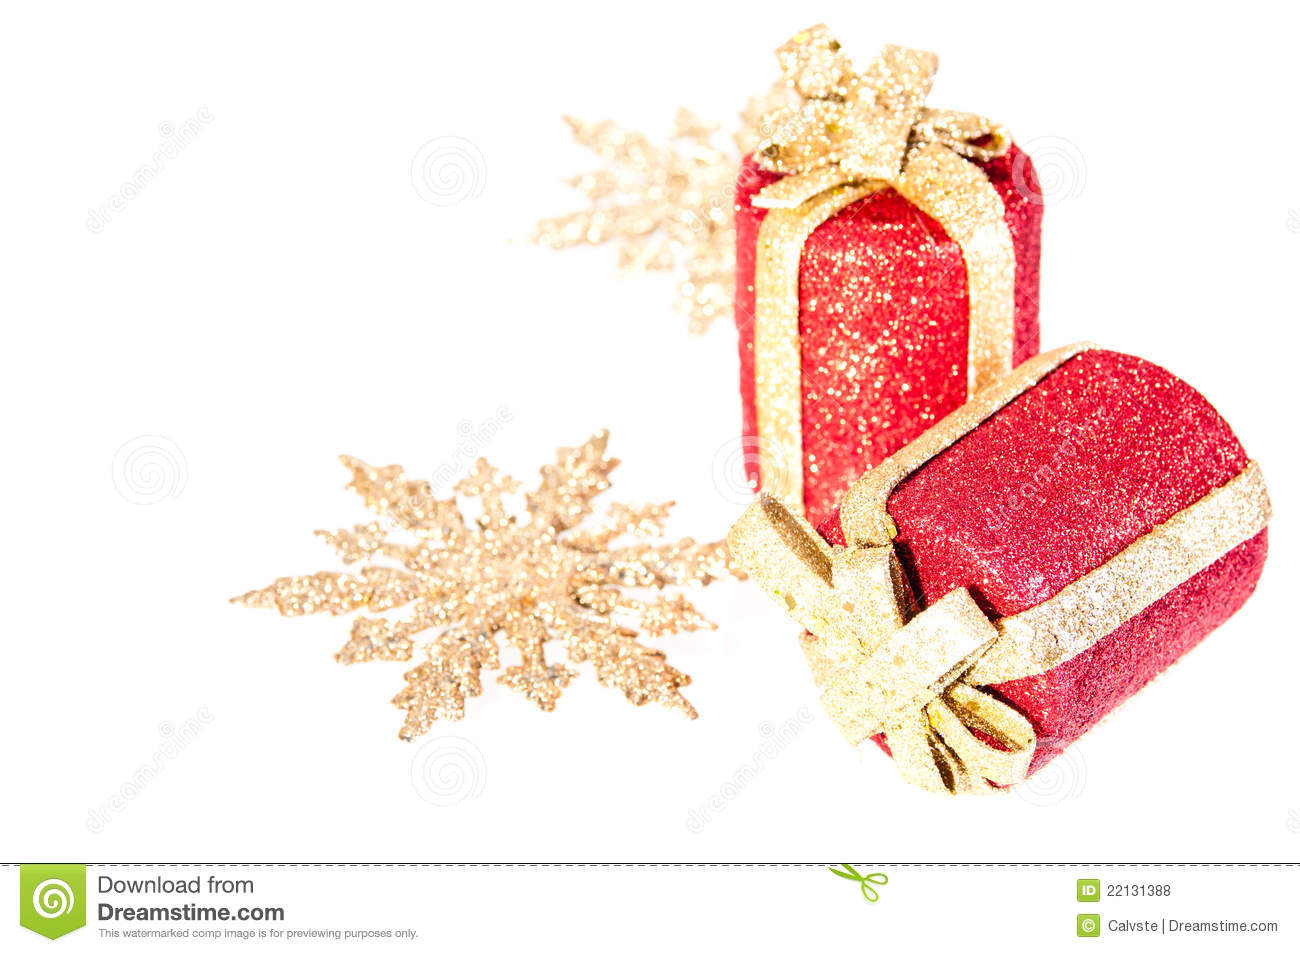 Christmas Ornaments Red And Gold : Red and gold christmas ornaments royalty free stock photos